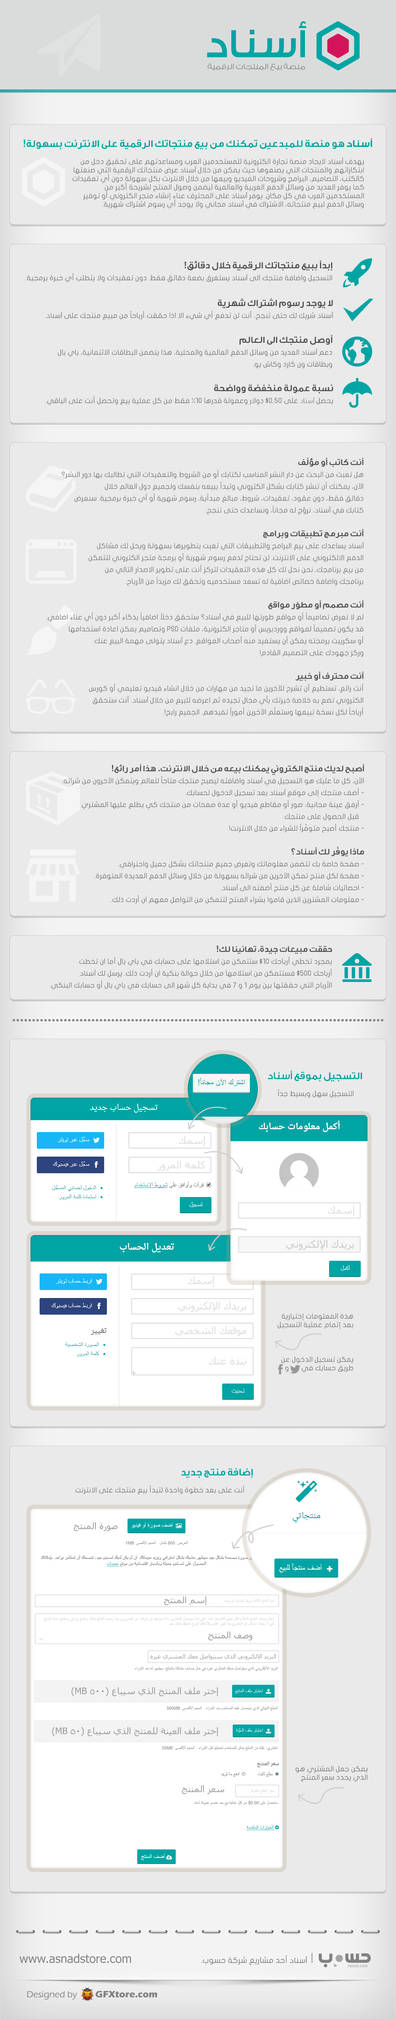 AsnadStore Infographic